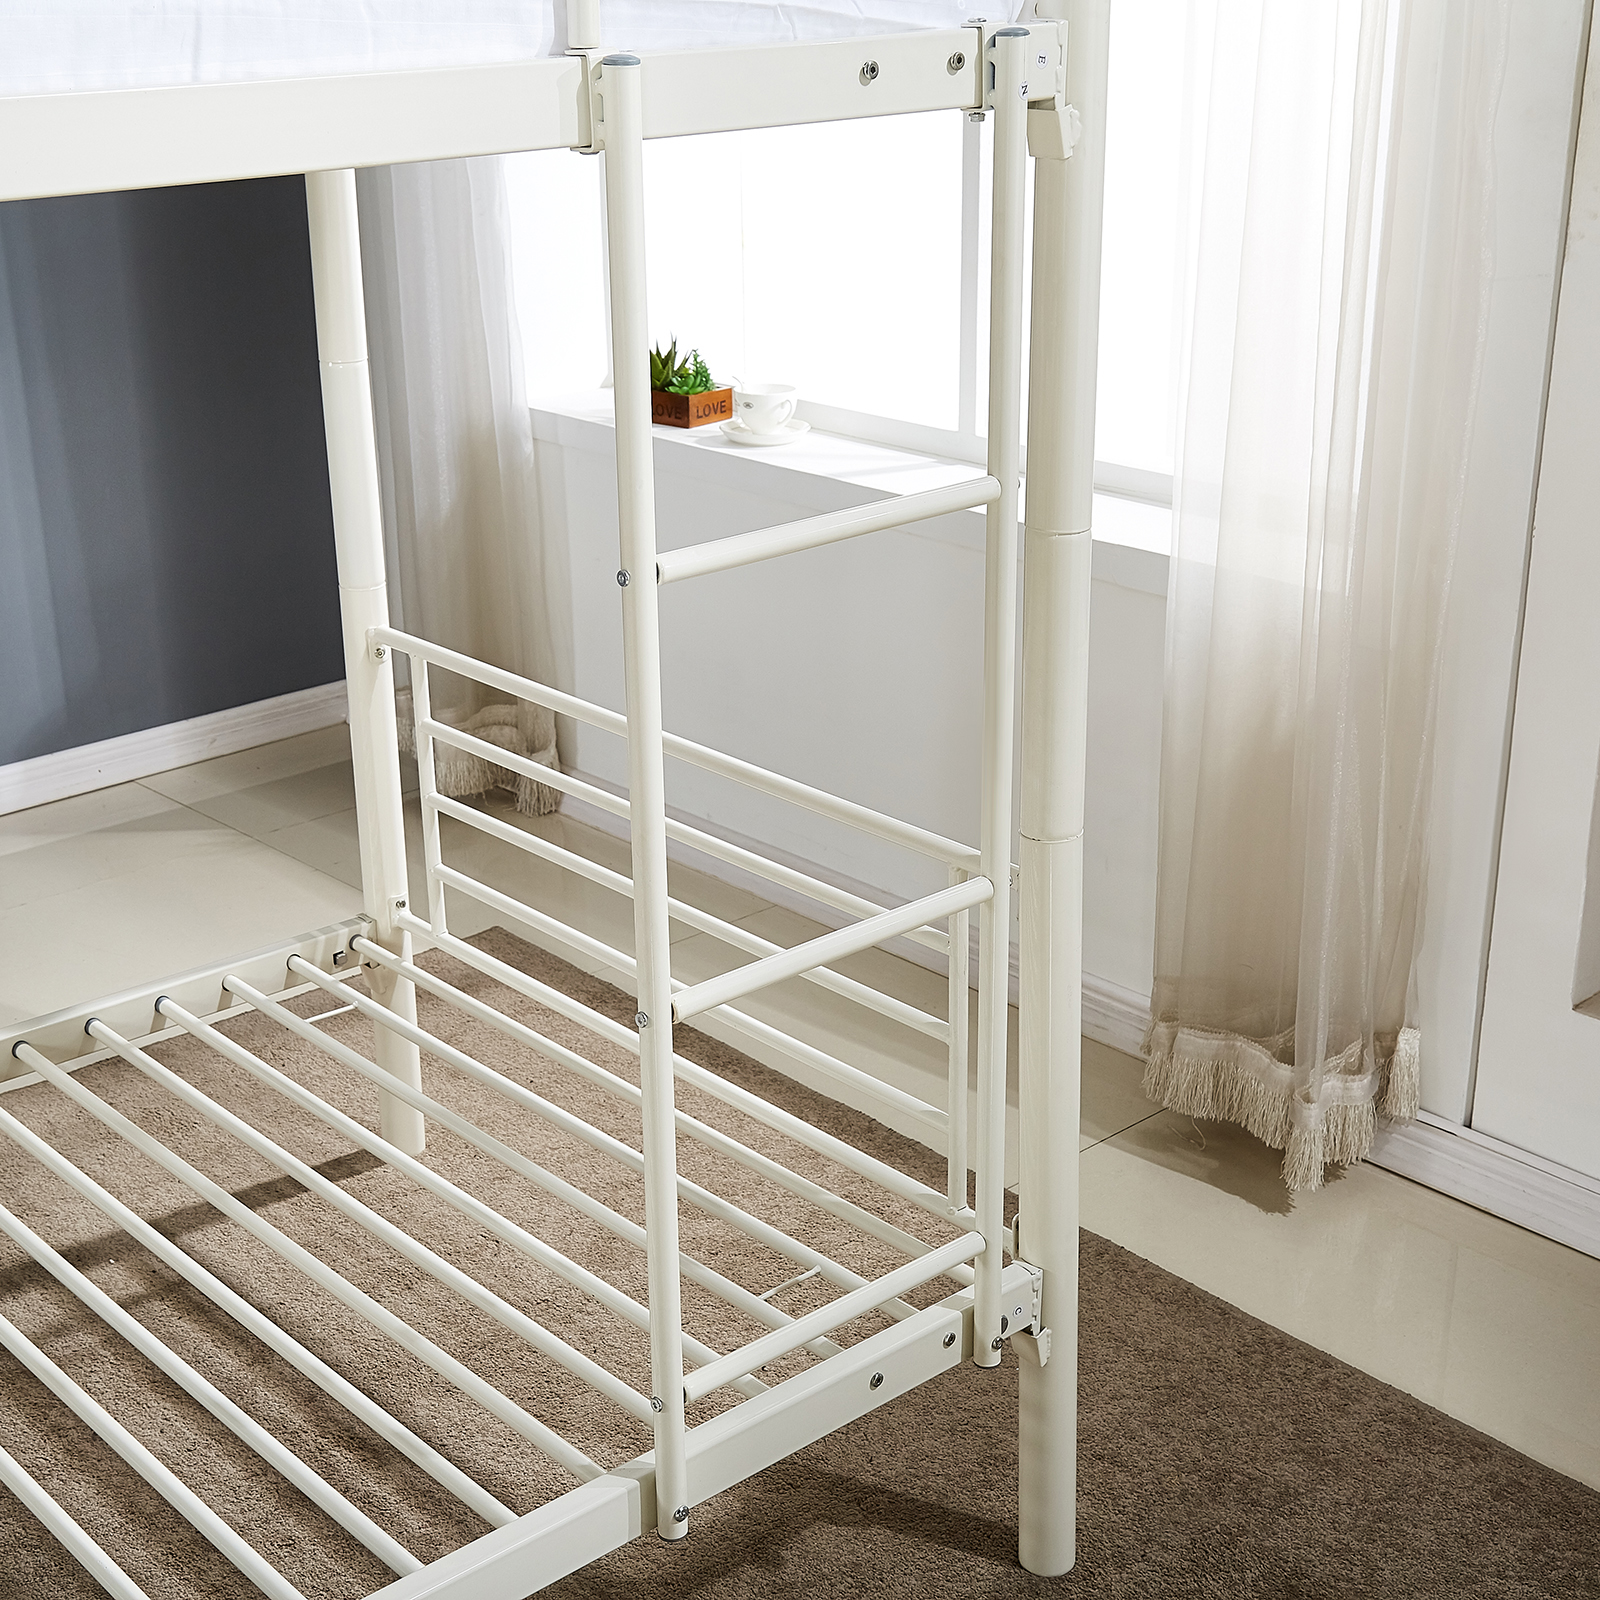 metal twin over twin size bunk bed frame platform ladder kids adult dorm bedroom 711639632608 ebay. Black Bedroom Furniture Sets. Home Design Ideas